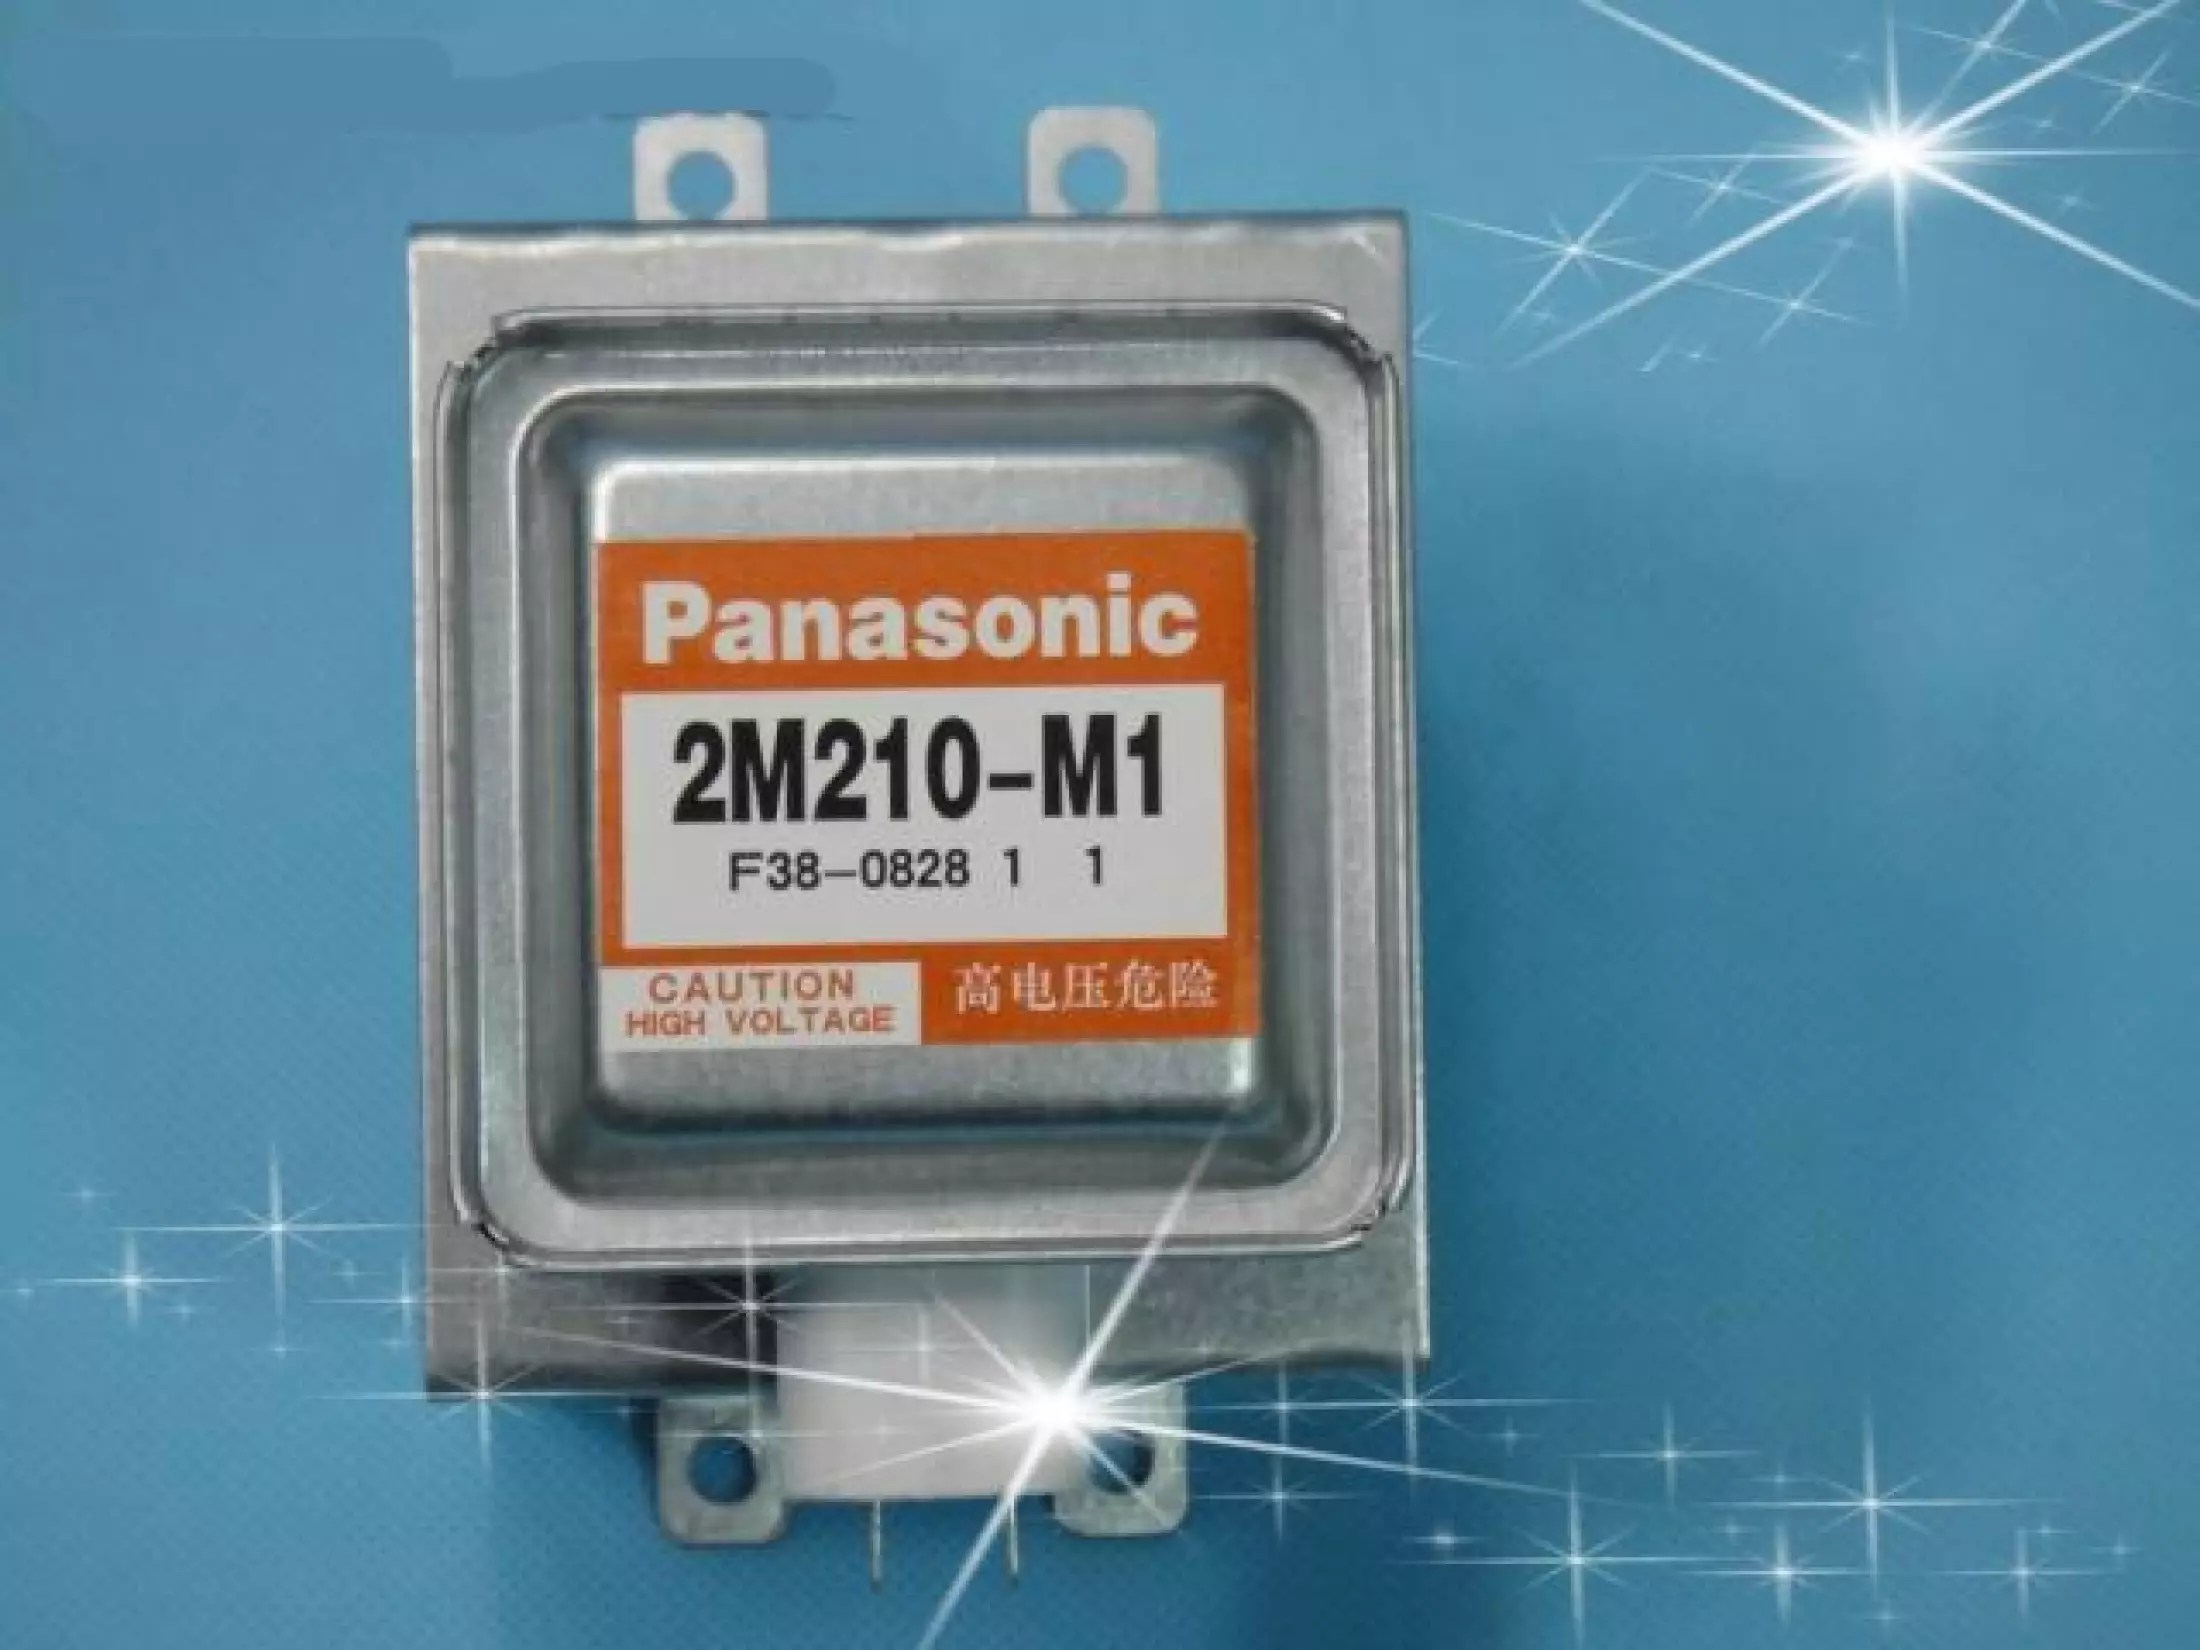 new 2m210 m1 spare parts for microwave oven for magnetron galanz magnetron panasonic microwave oven parts